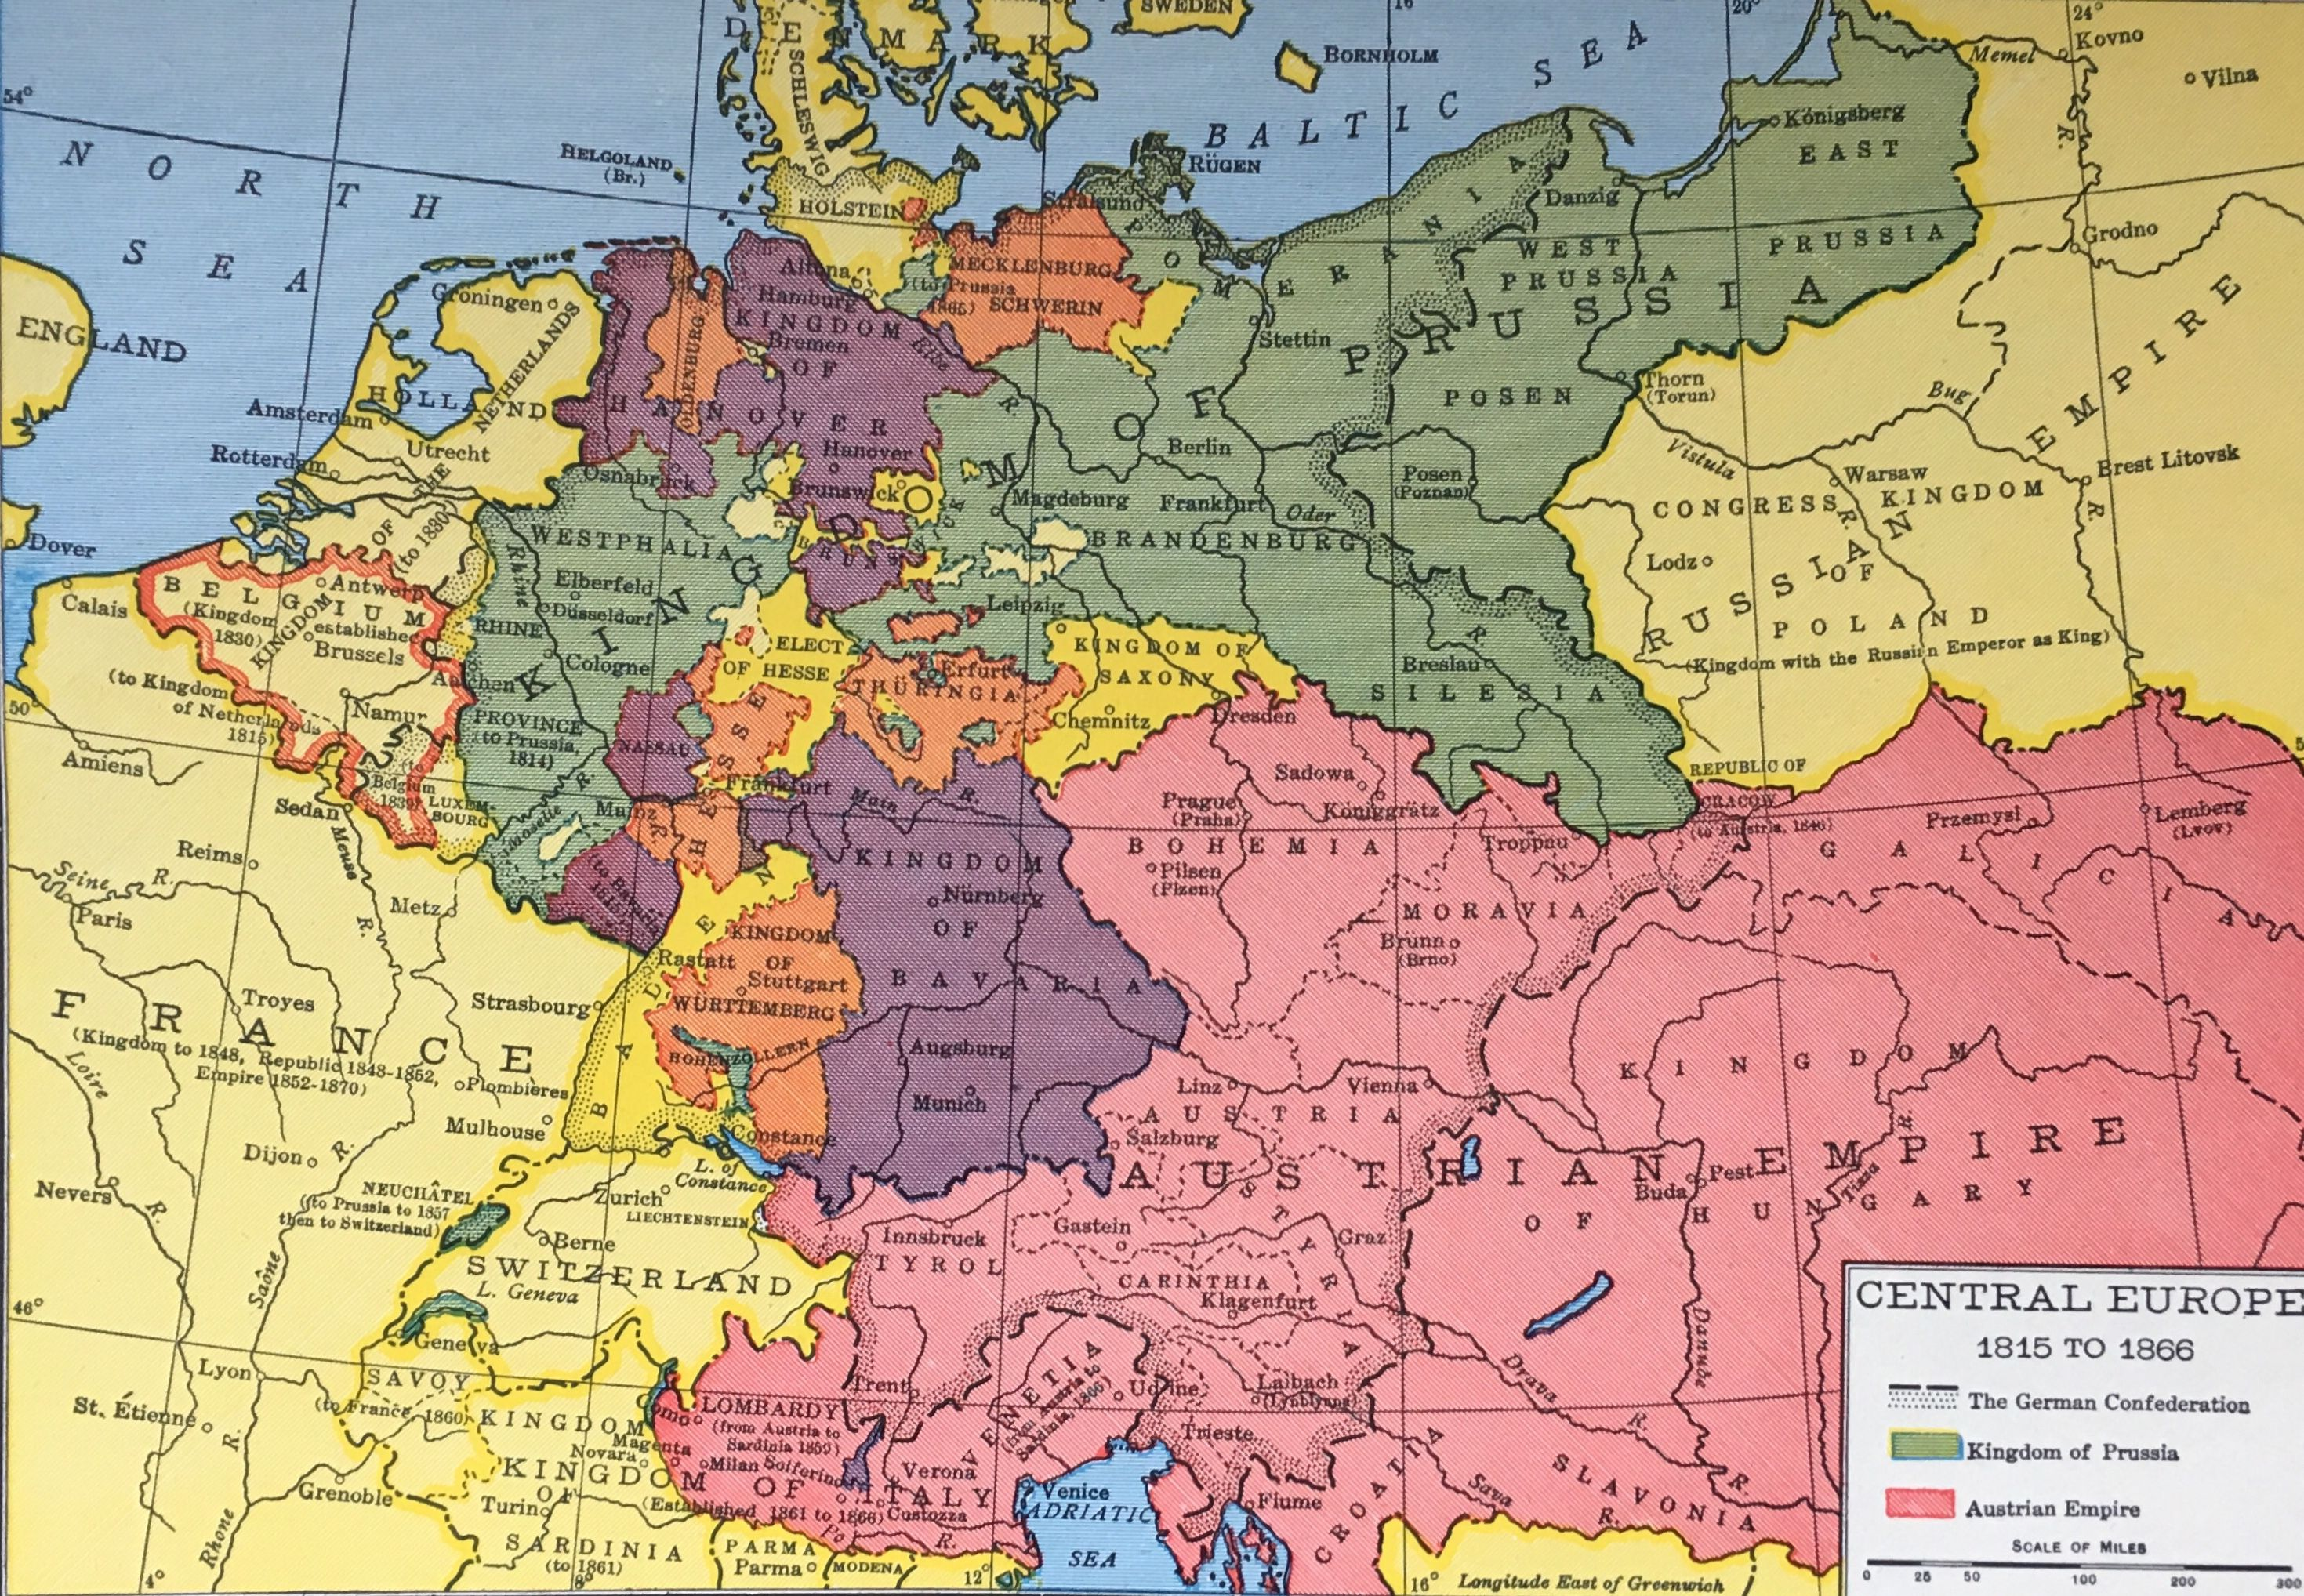 Central Europe 1815 to 1866